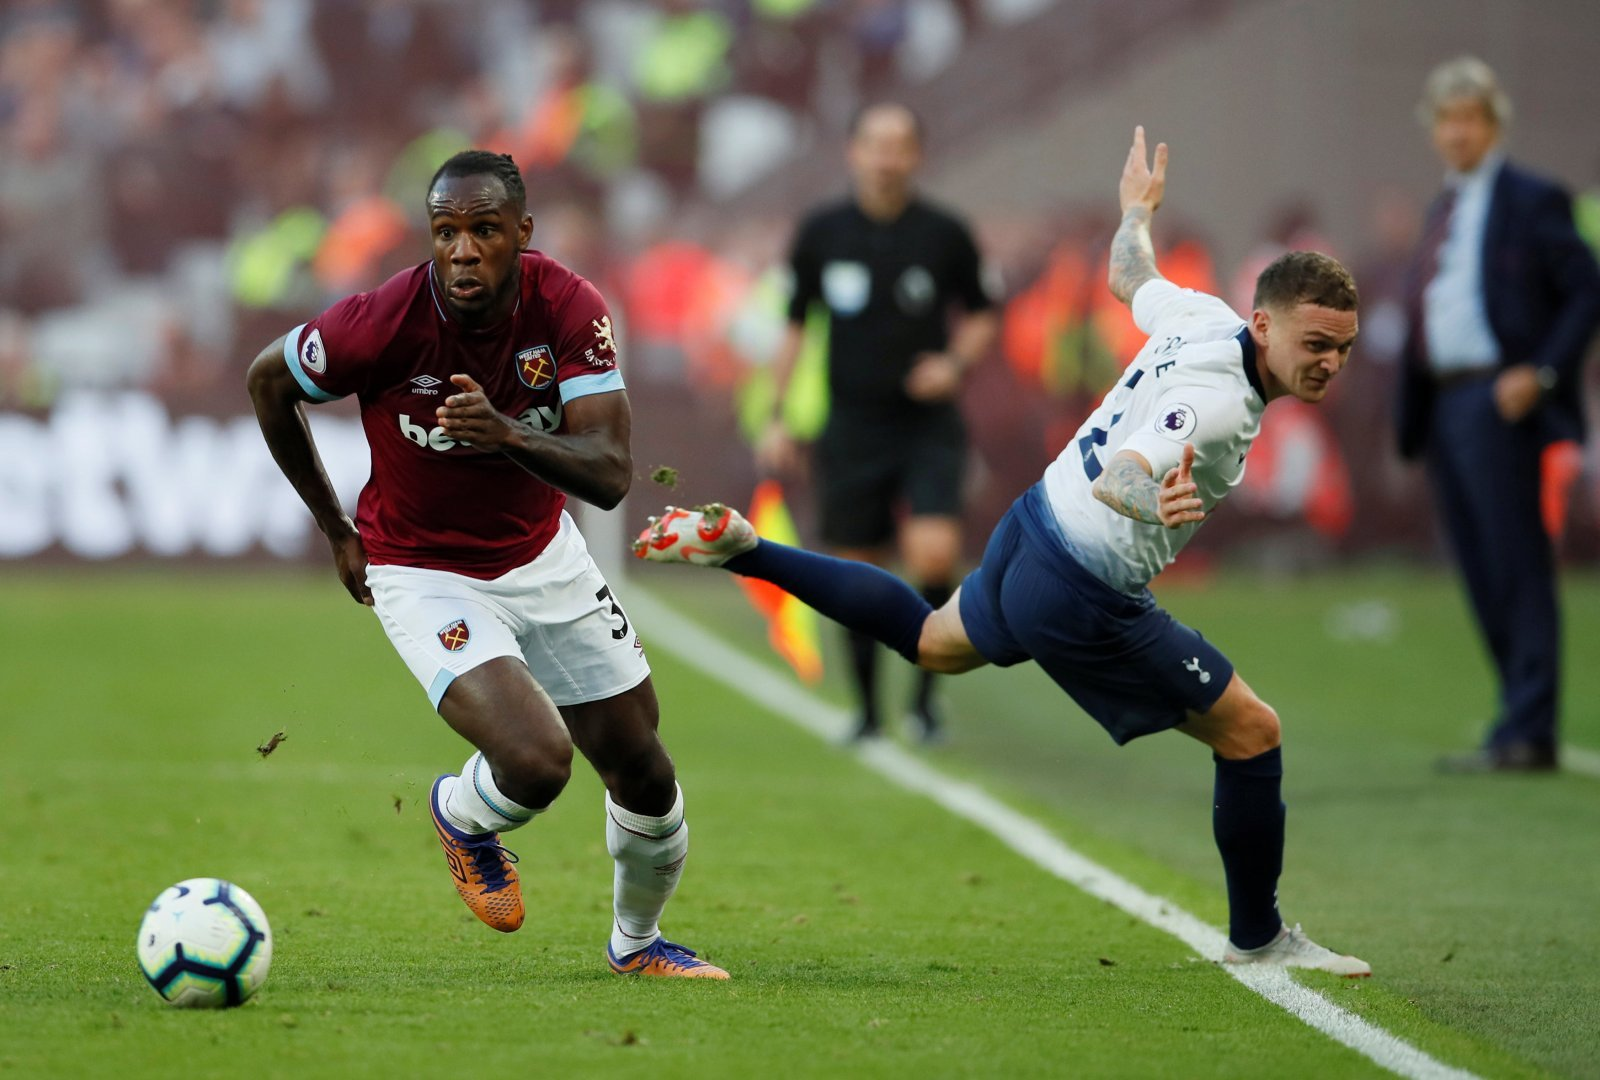 Antonio can thrive for West Ham in the absence of Yarmolenko